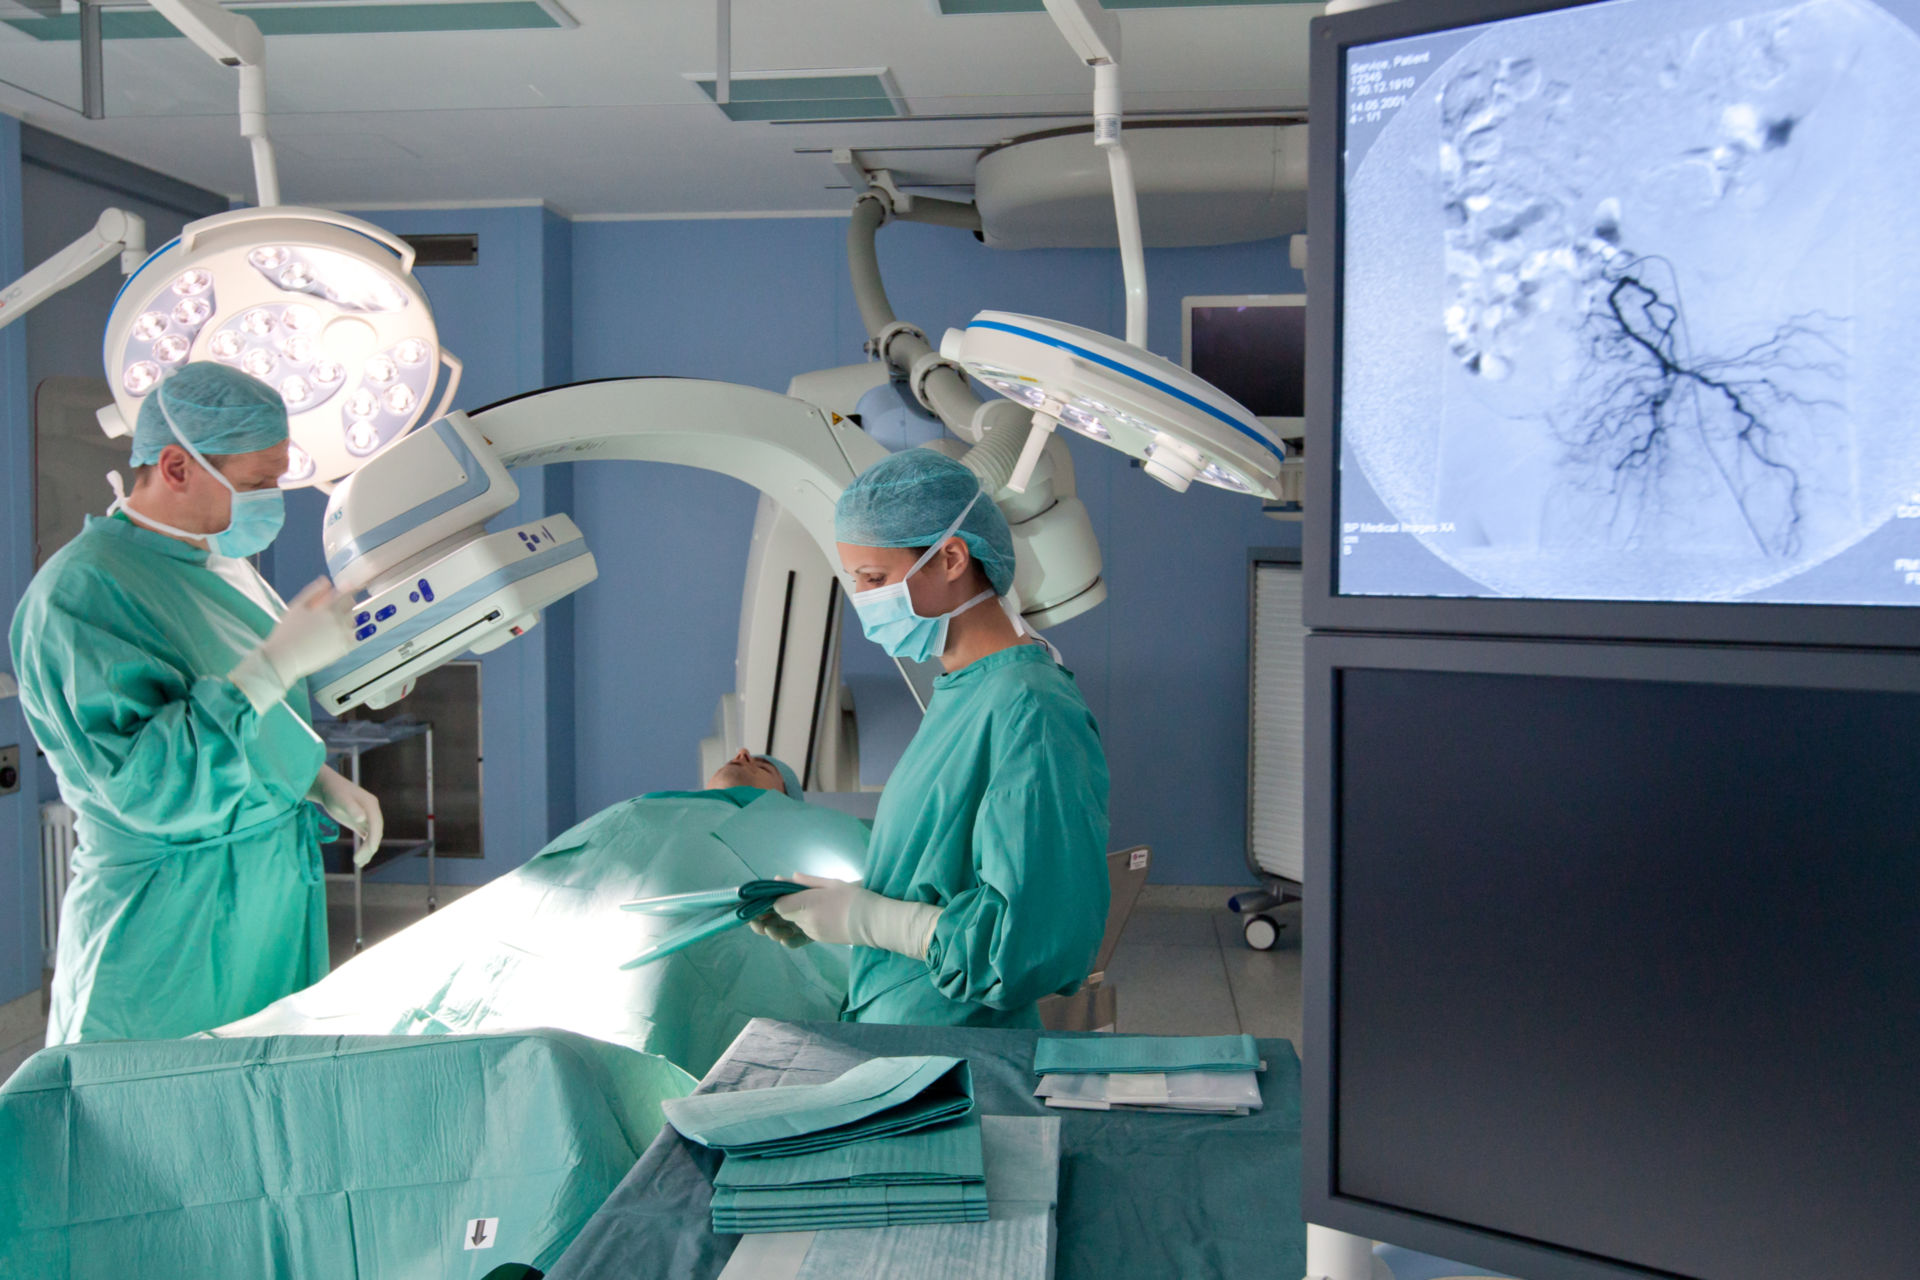 Angiography inside the hybrid operating room